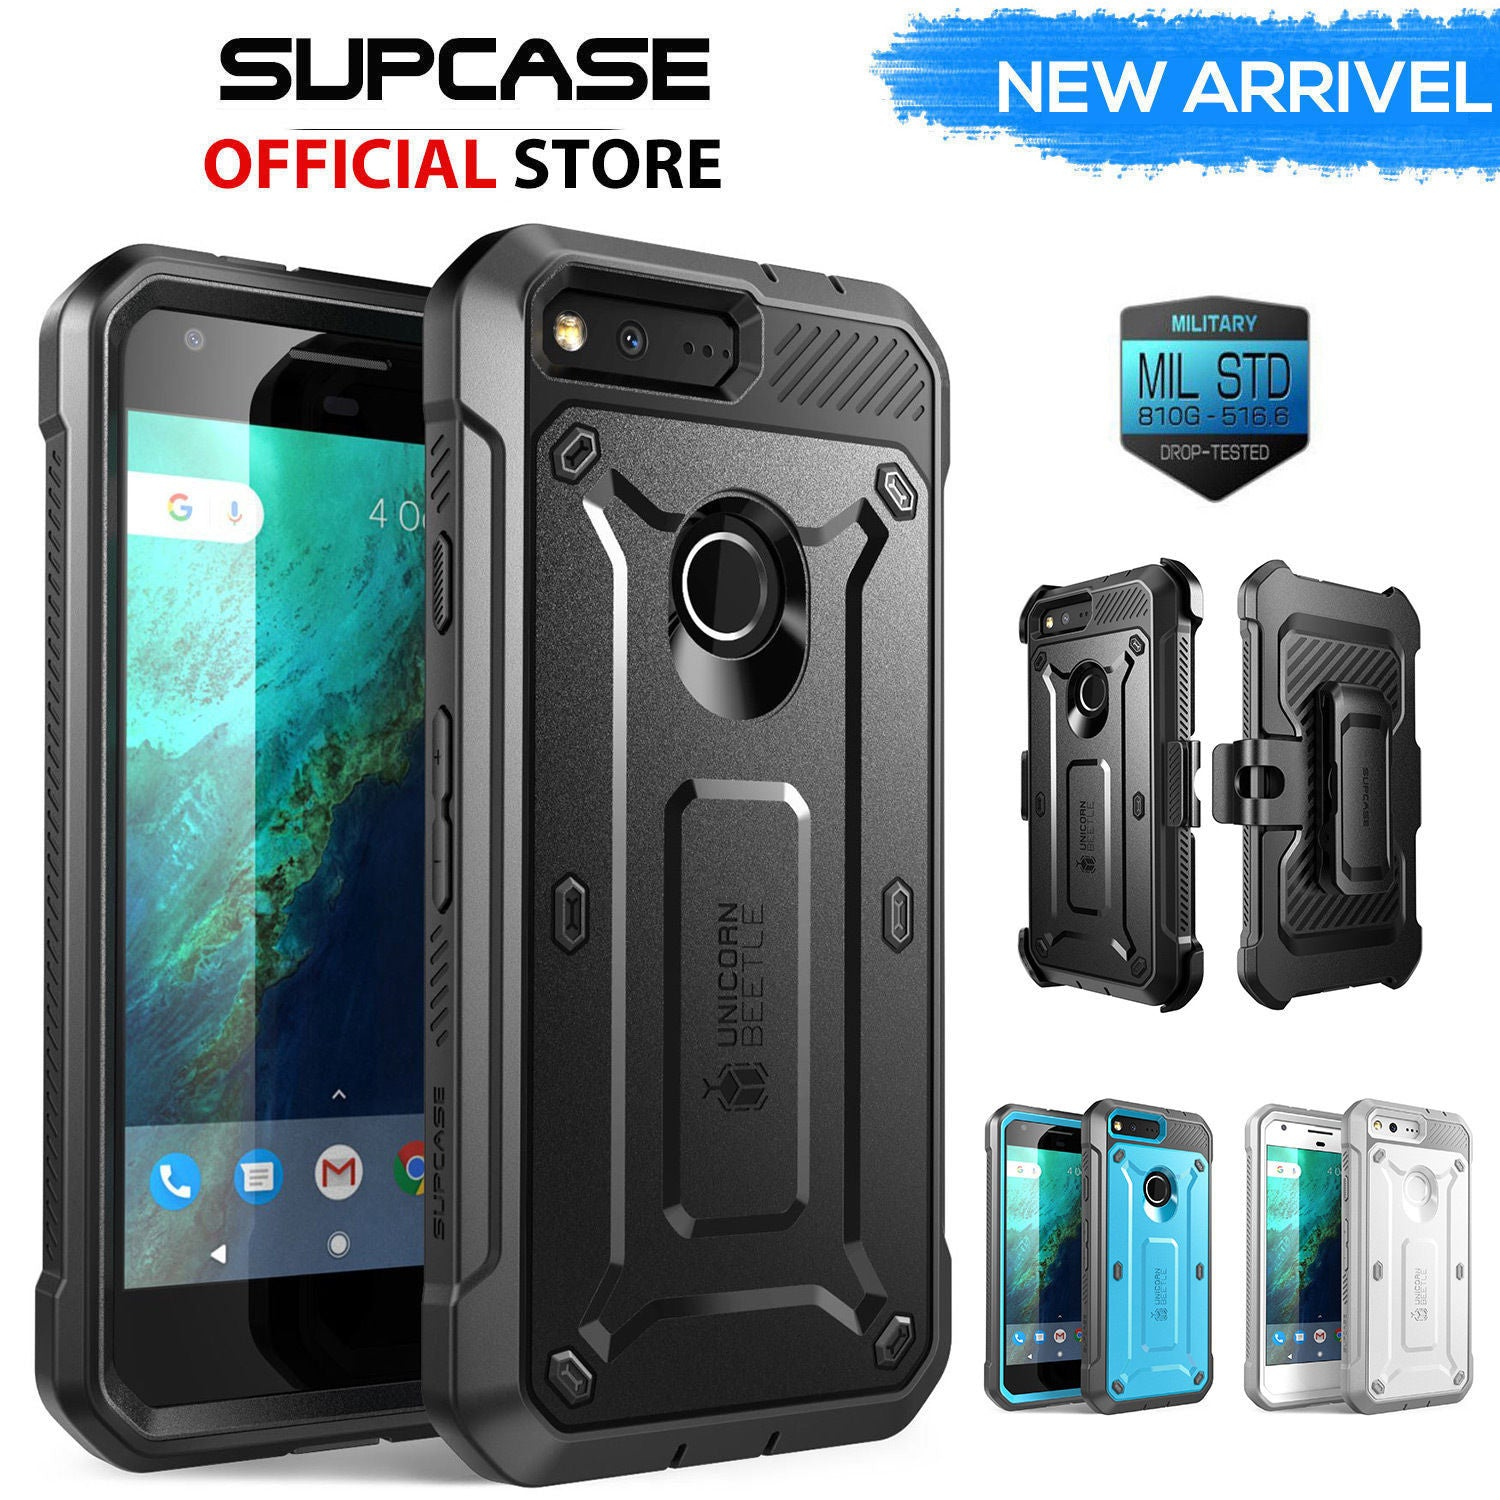 Genuine SUPCASE Shockproof Heavy Duty Armor Tough Case For Google Pixel